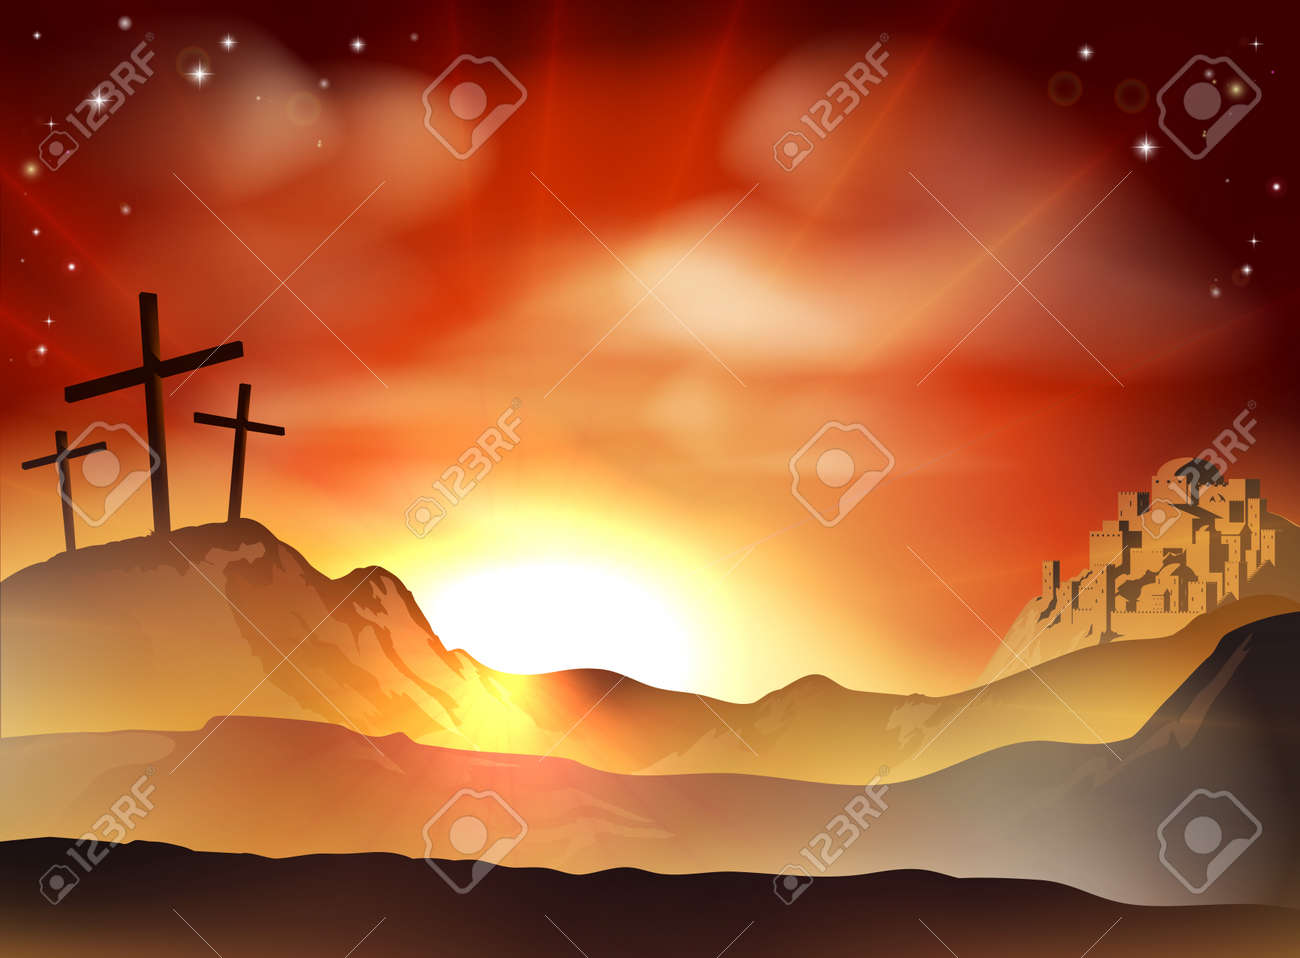 dramatic christian easter concept of jesus and the two thieves